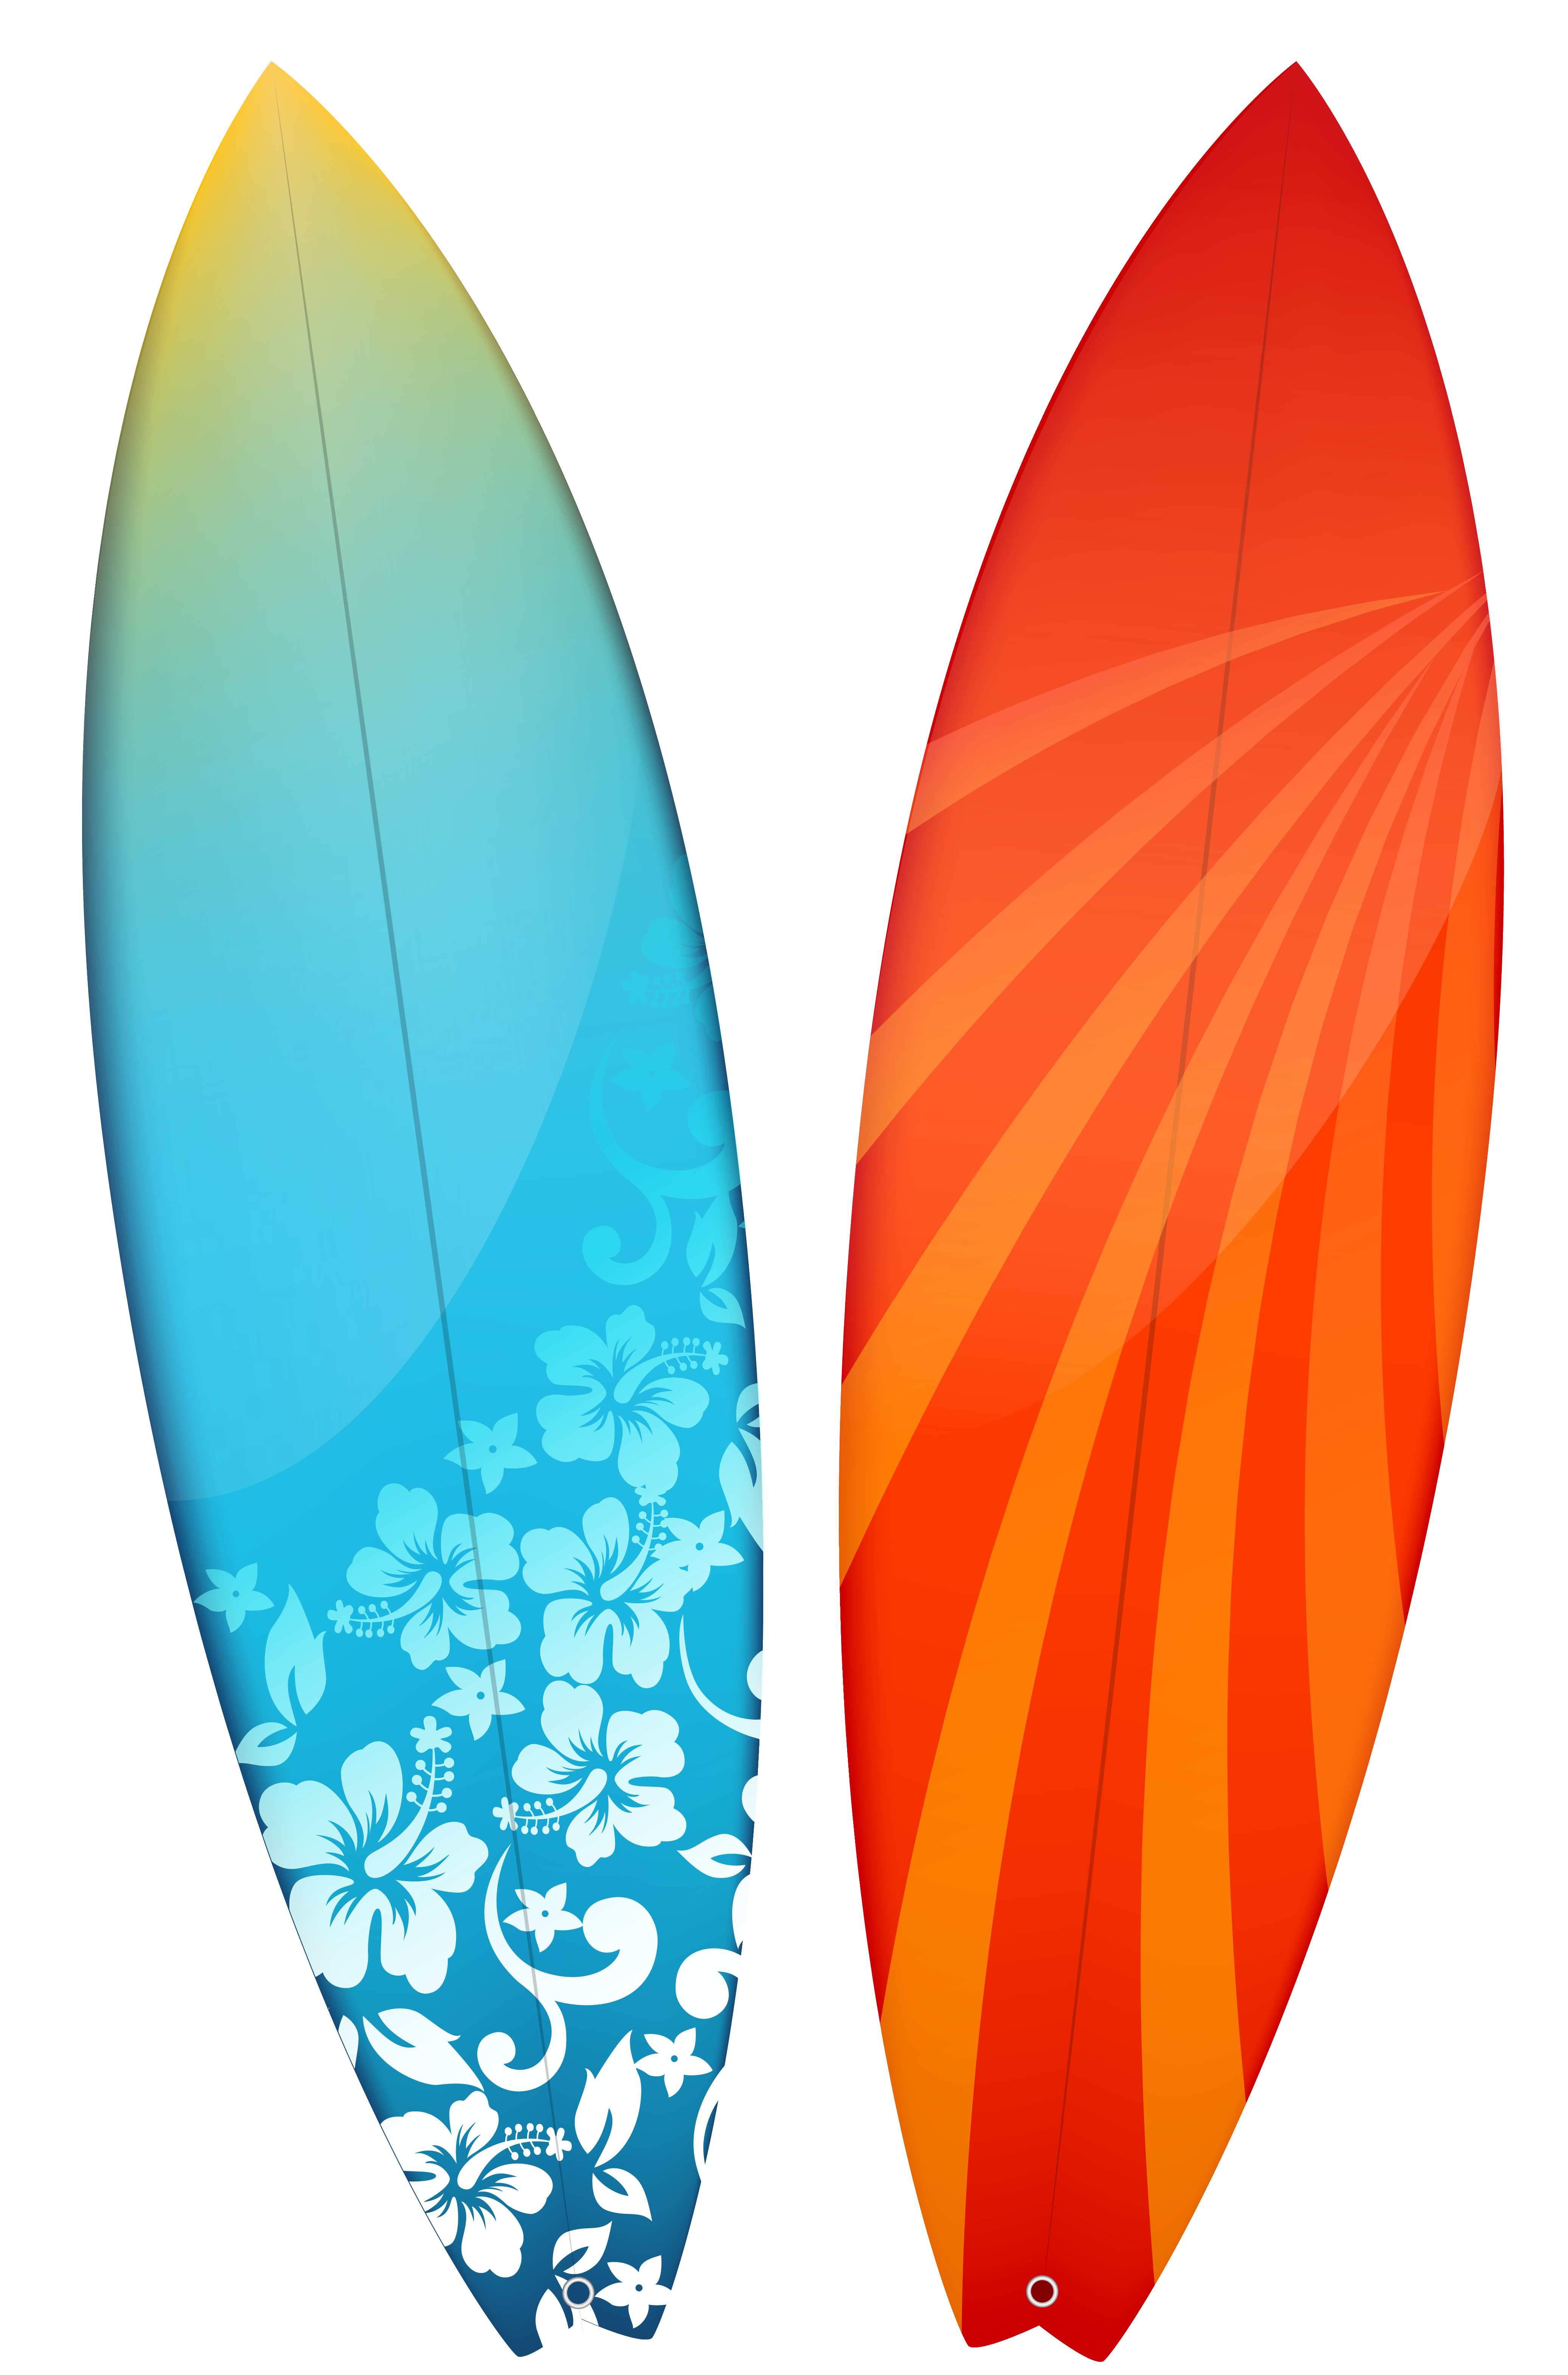 Surfboard clipart #8, Download drawings